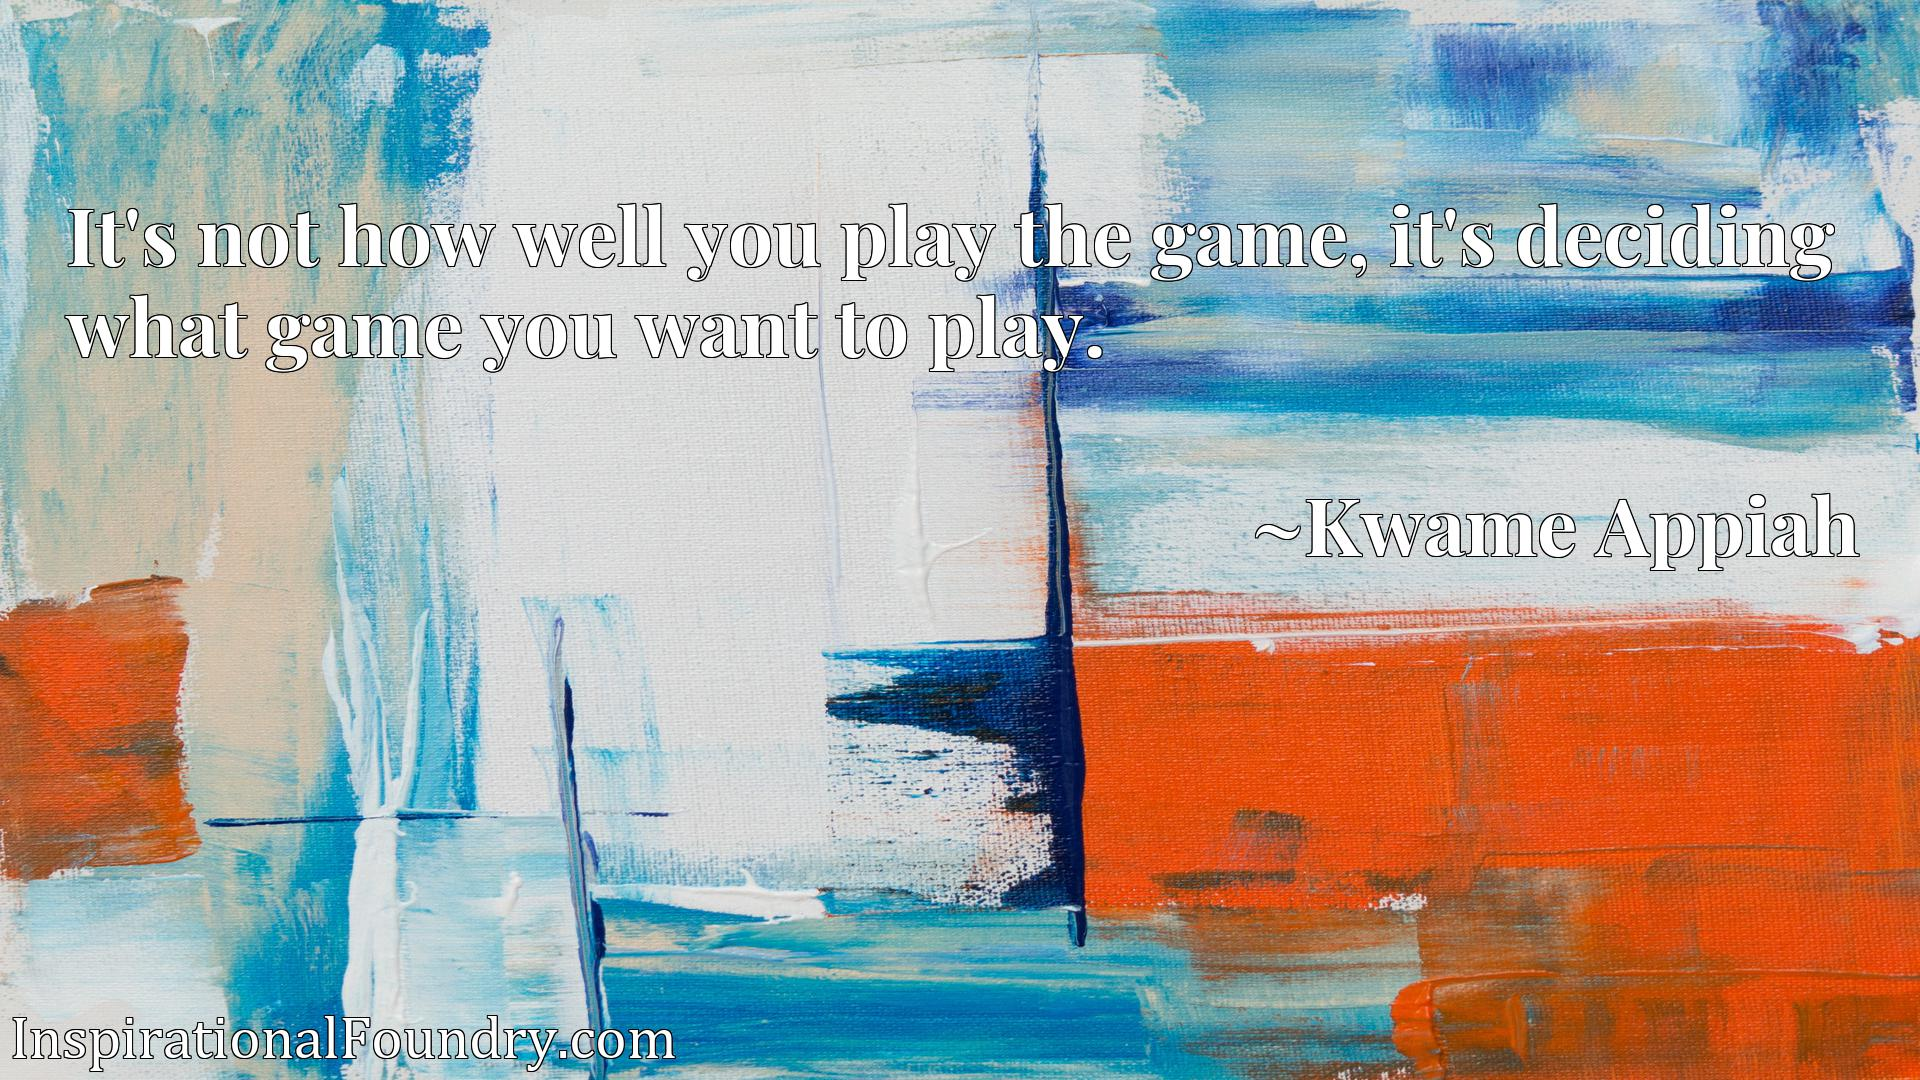 It's not how well you play the game, it's deciding what game you want to play.